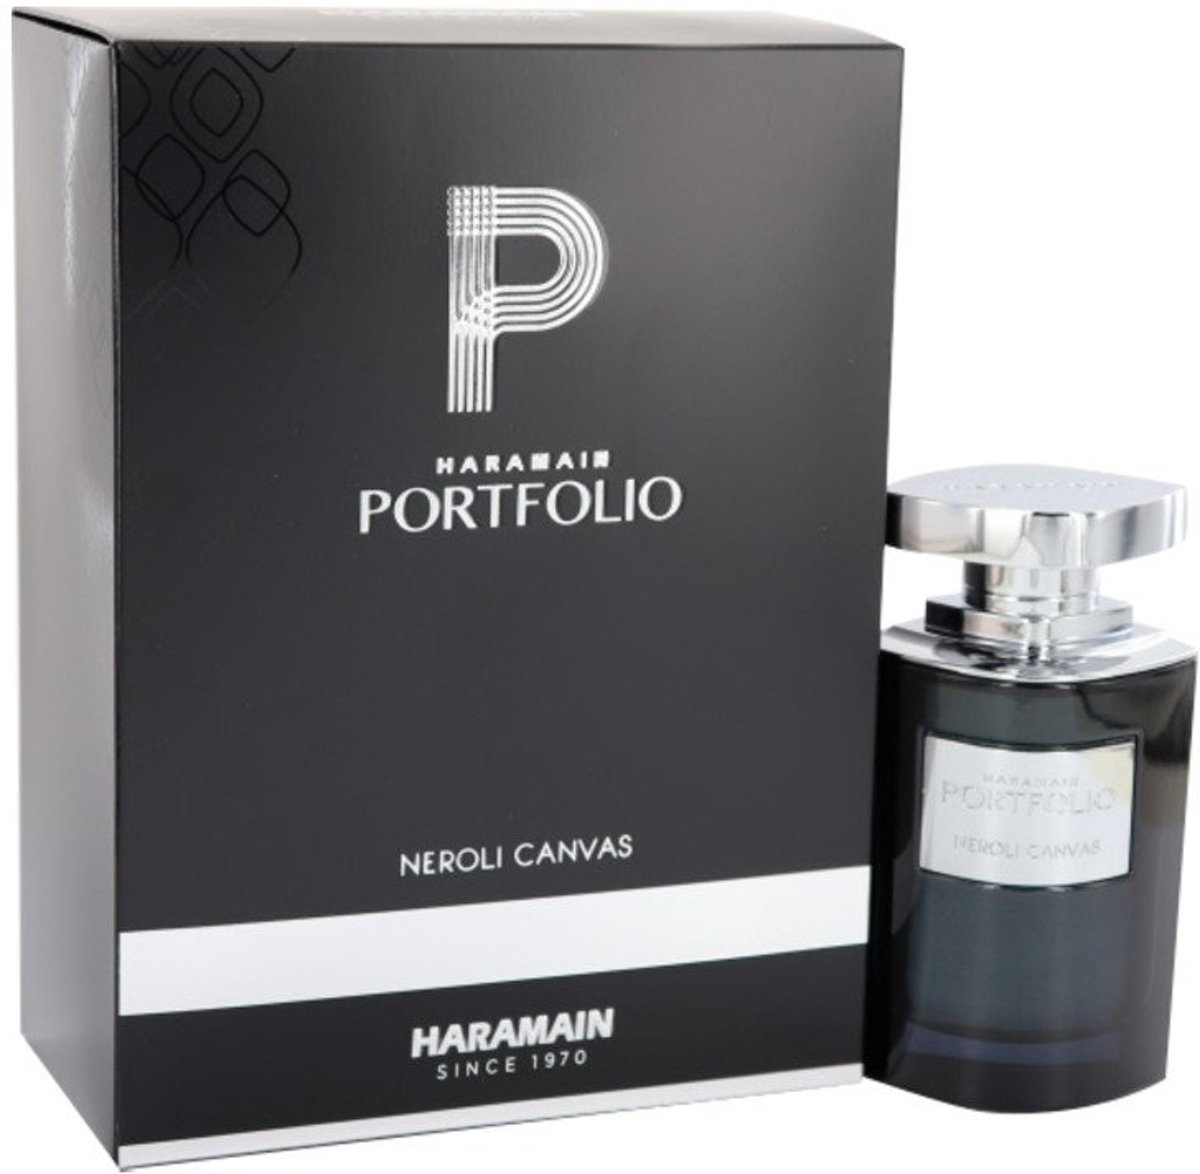 Al Haramain Portfolio Neroli Canvas - Eau de parfum spray - 75 ml